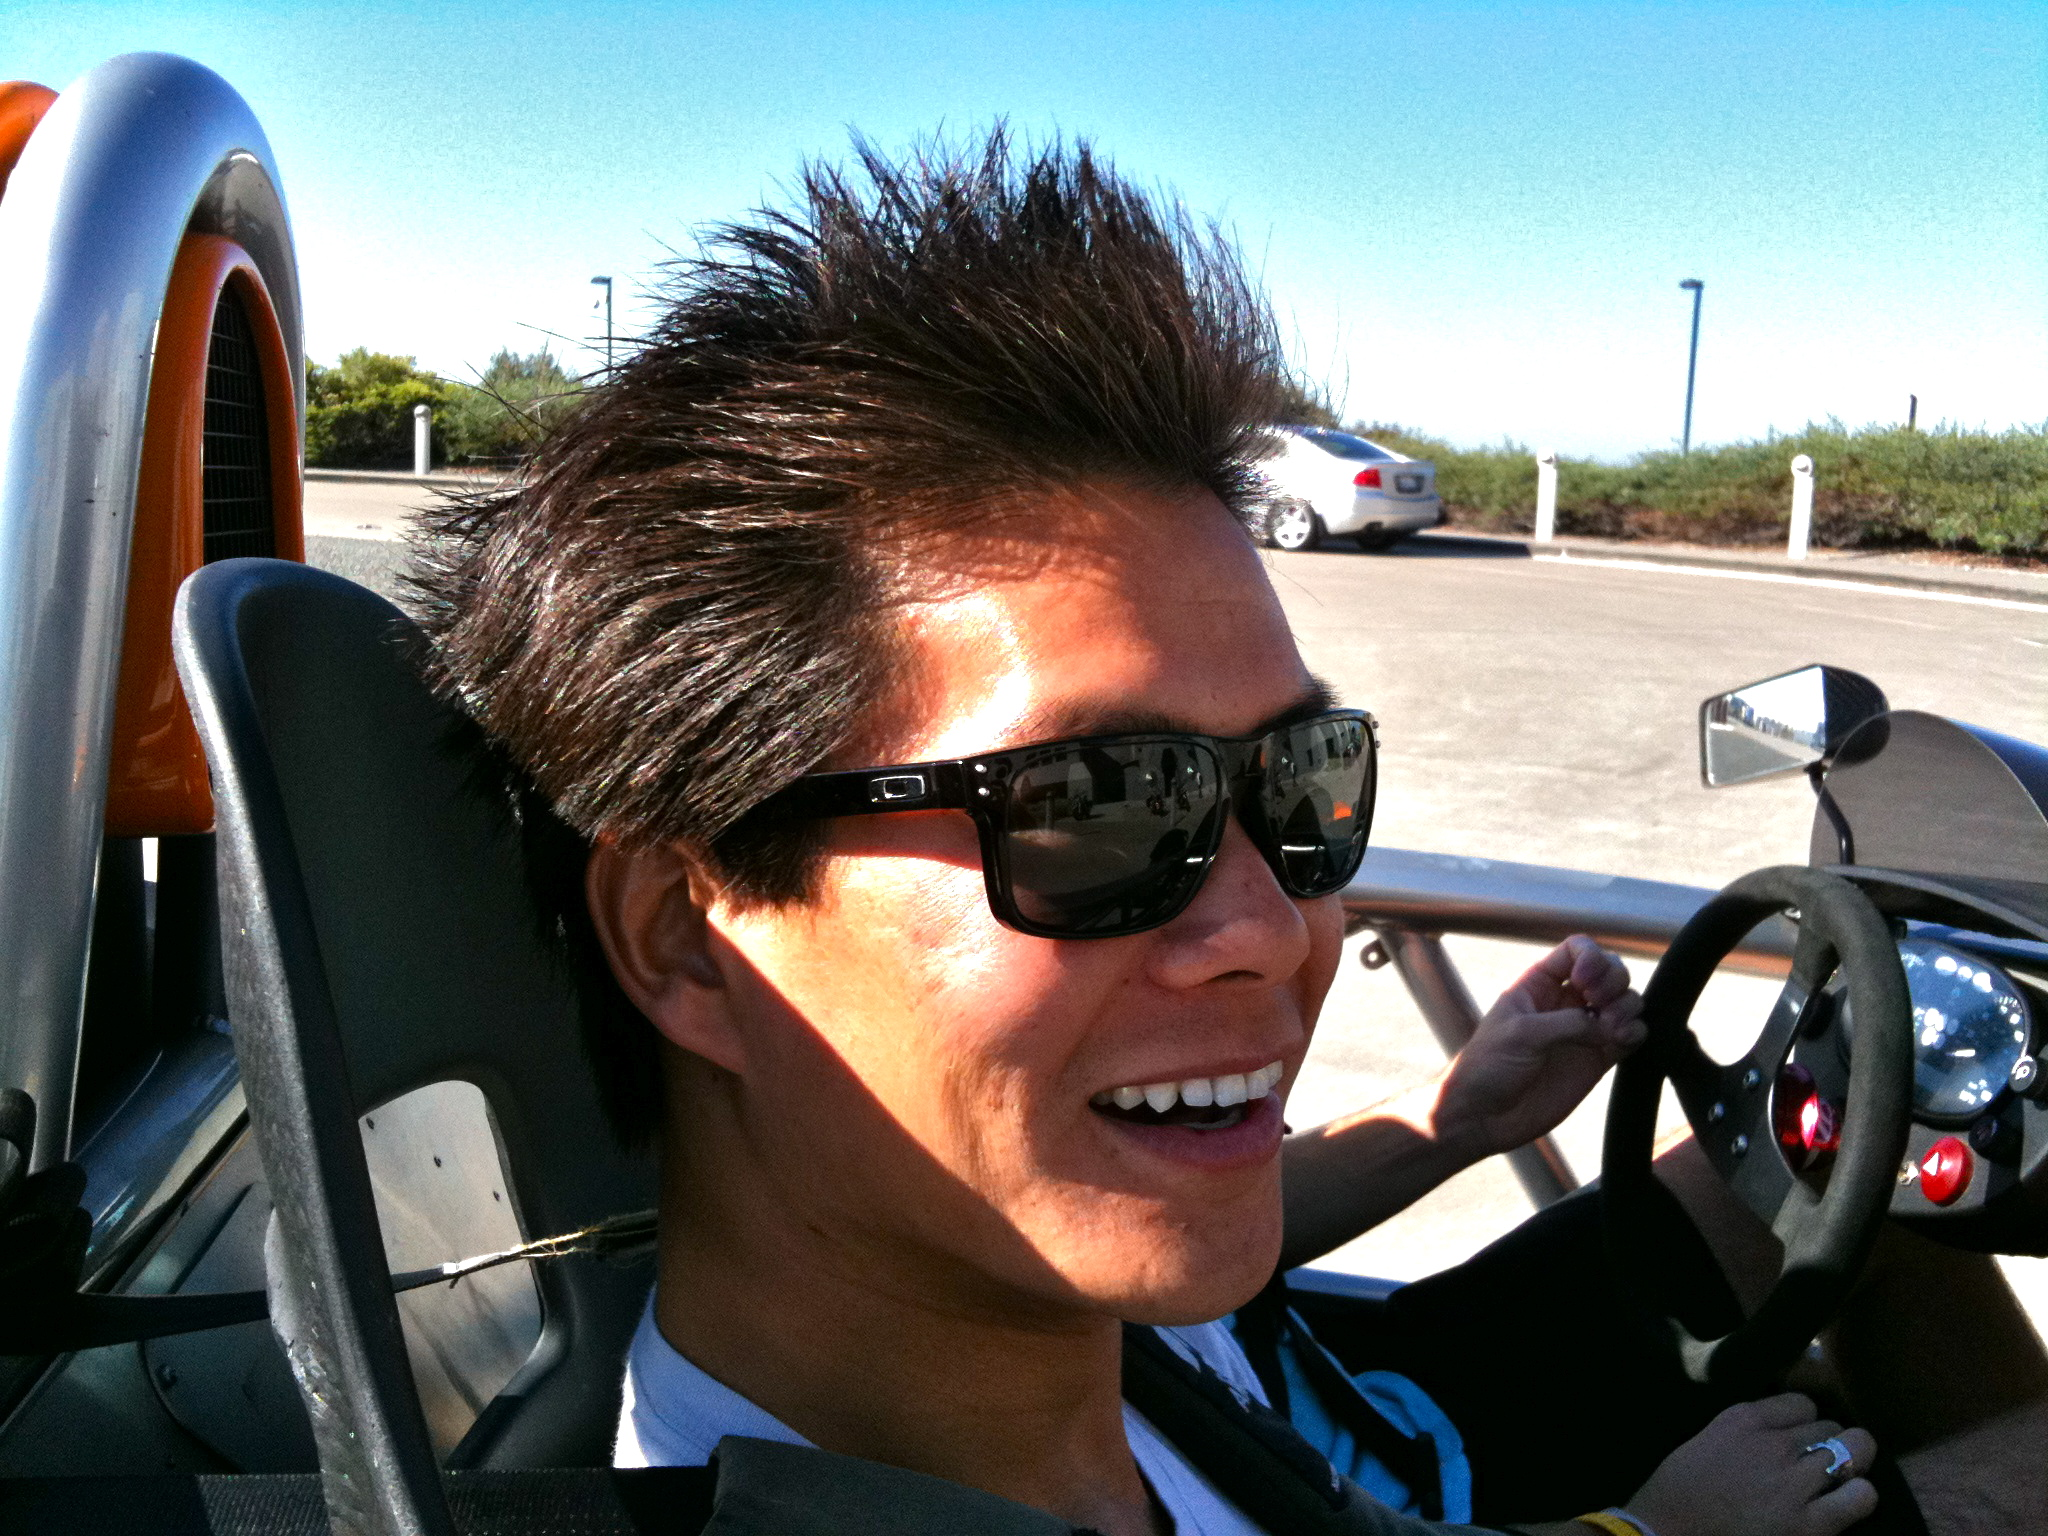 This is what happened to @nthuwirat's hair after a quick ride in an Ariel Atom.